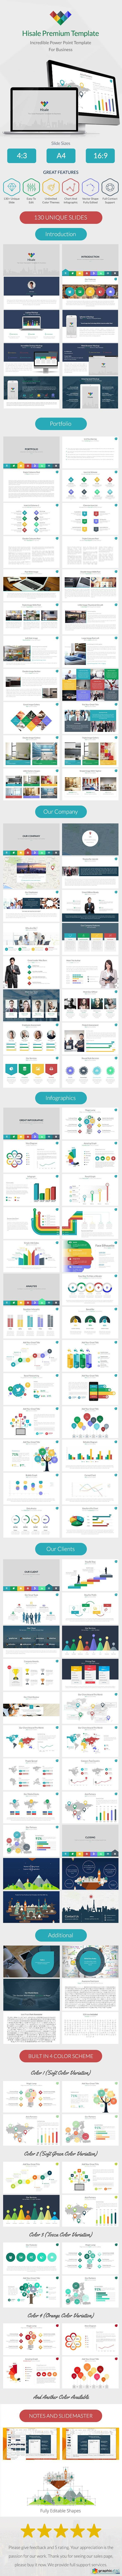 Hisale - Multipurpose Powerpoint Template